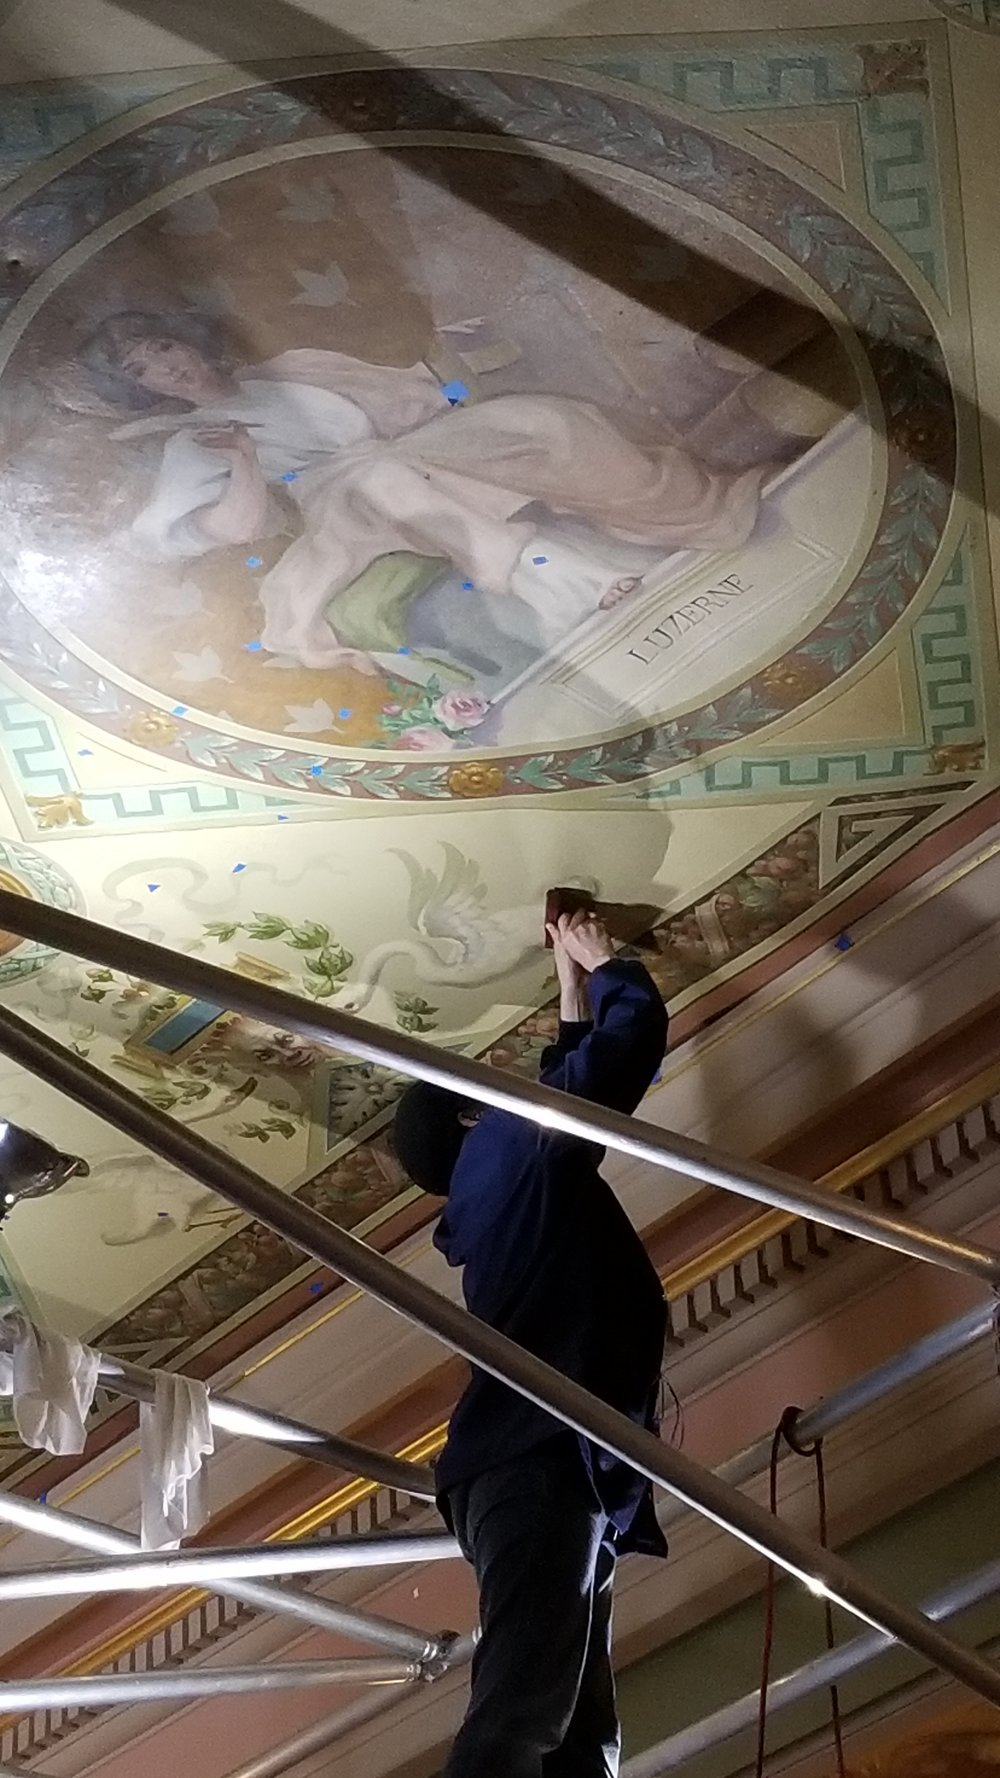 A MEMBER OF THE JOHN CANNING CO., LTD TEAM BEGINS RESTORATION WORK AT THE LUZERNE COUNTY COURTHOUSE